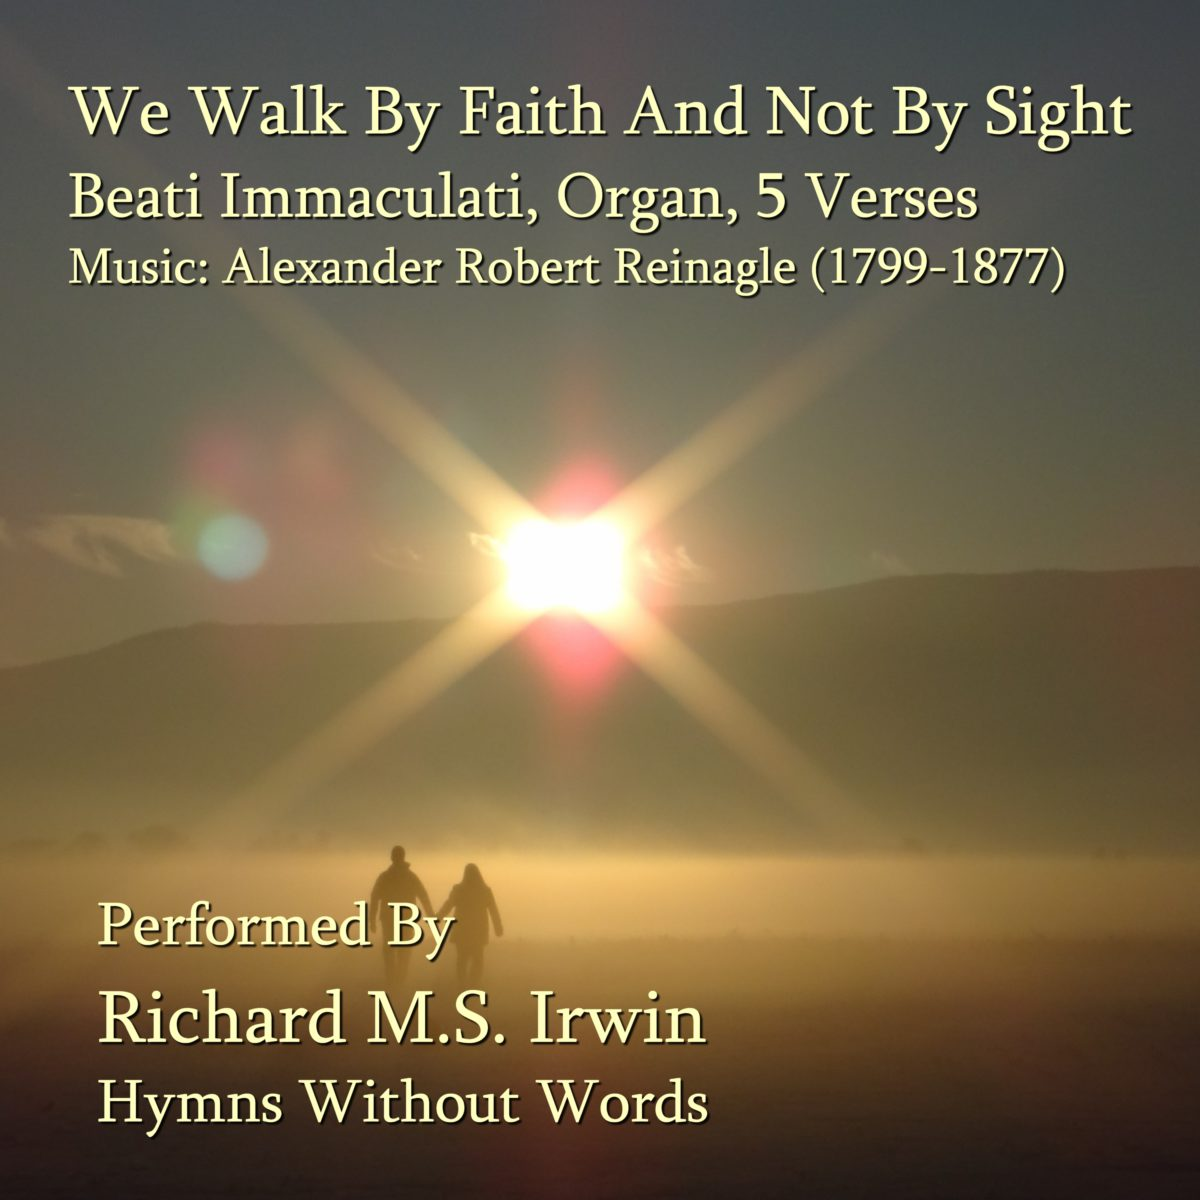 We Walk By Faith And Not By Sight (Beati Immaculati, Organ, 5 Verses)